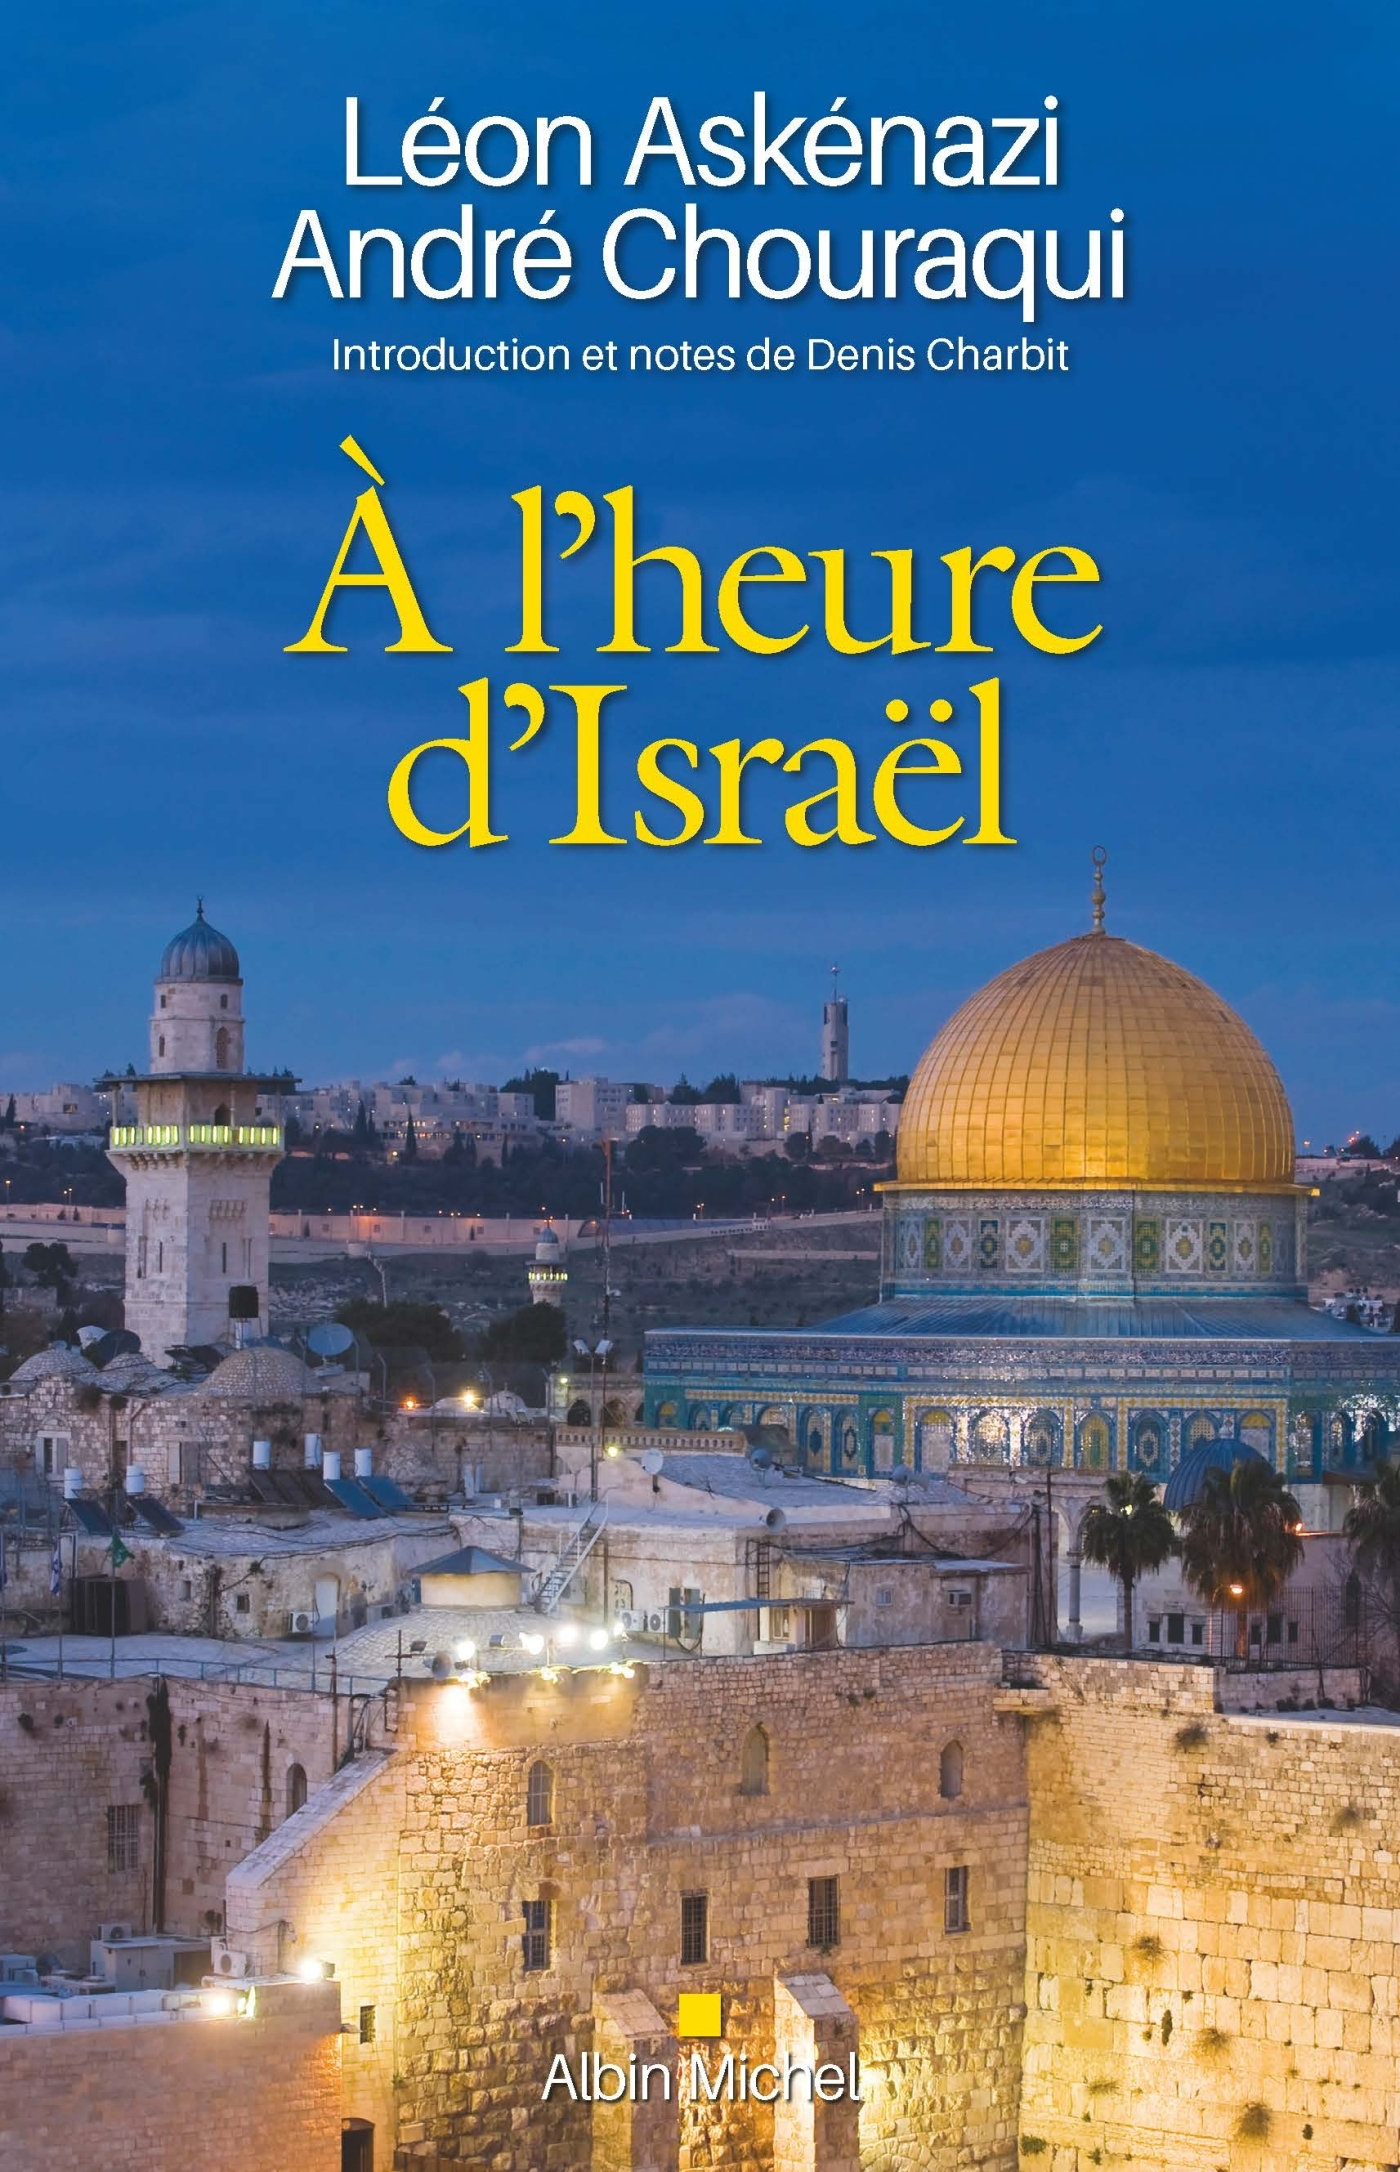 A L'HEURE D'ISRAEL - INTRODUCTION ET NOTES DE DENIS CHARBIT